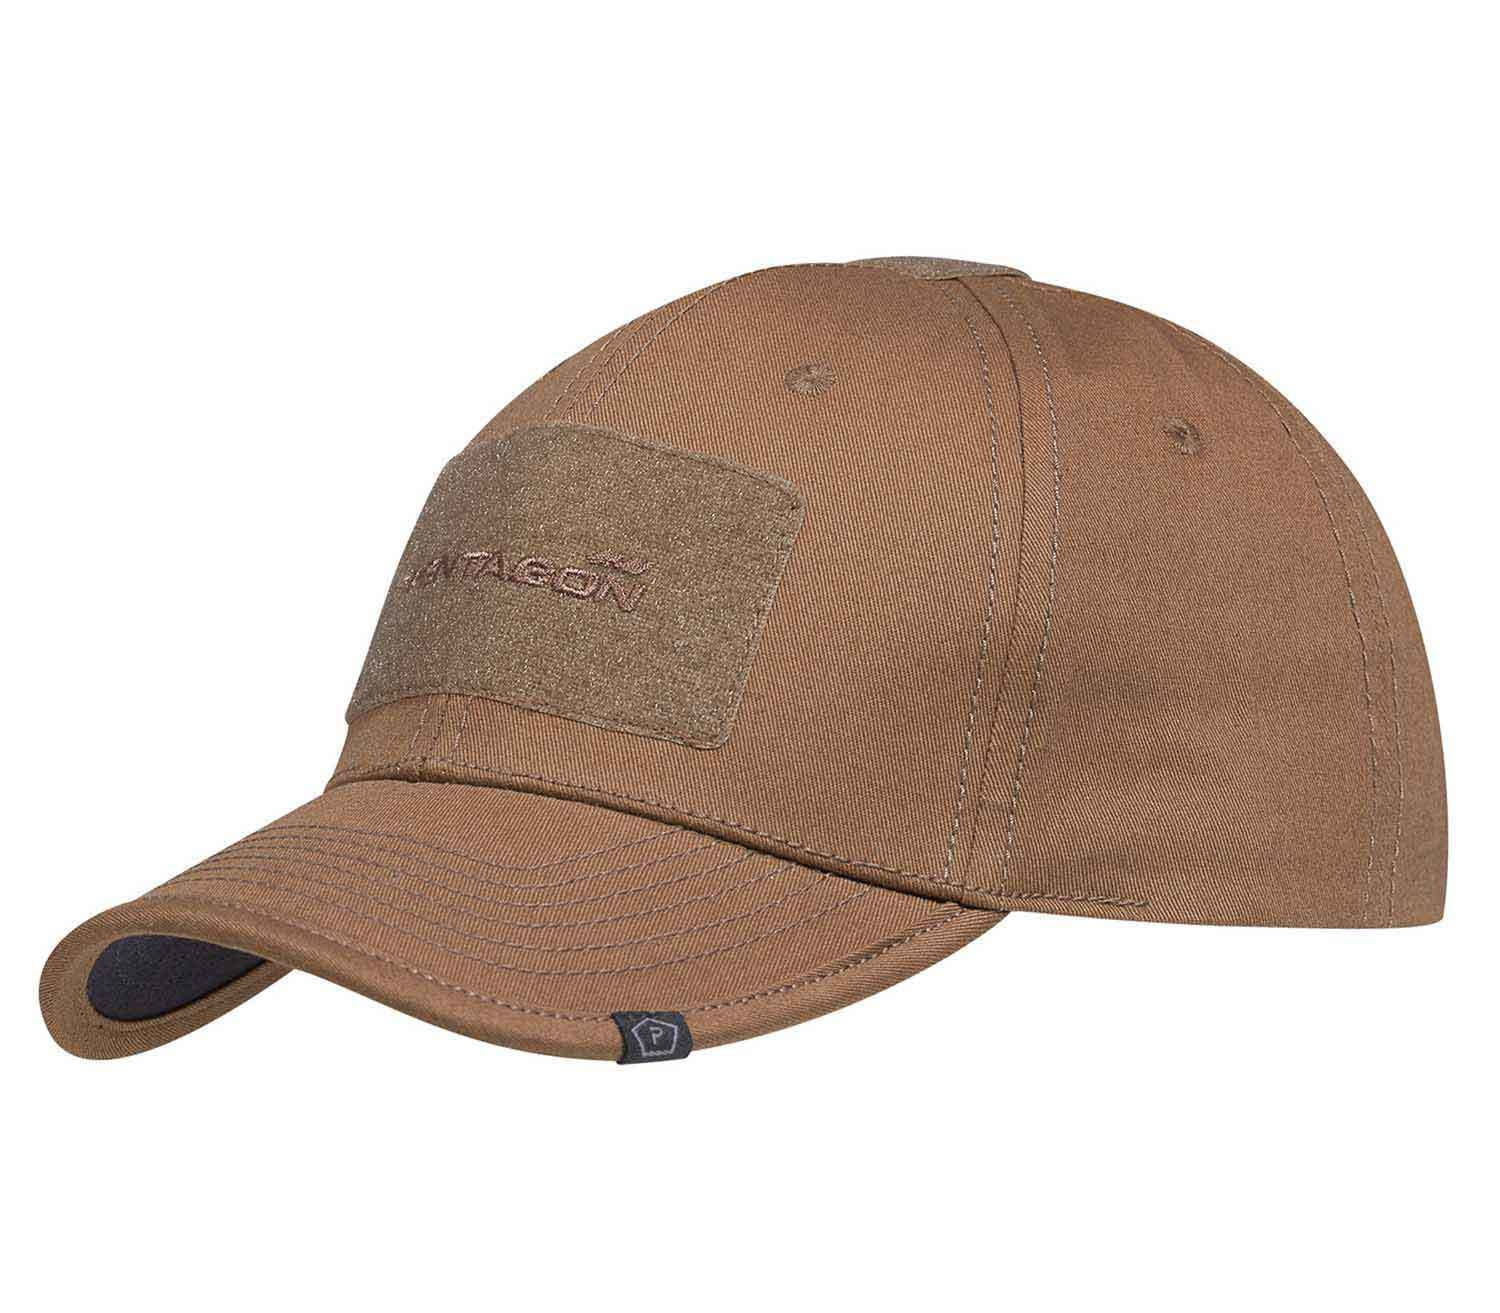 Gorra-Pentagon-Tactical-2.0-Coyote-1.jpg